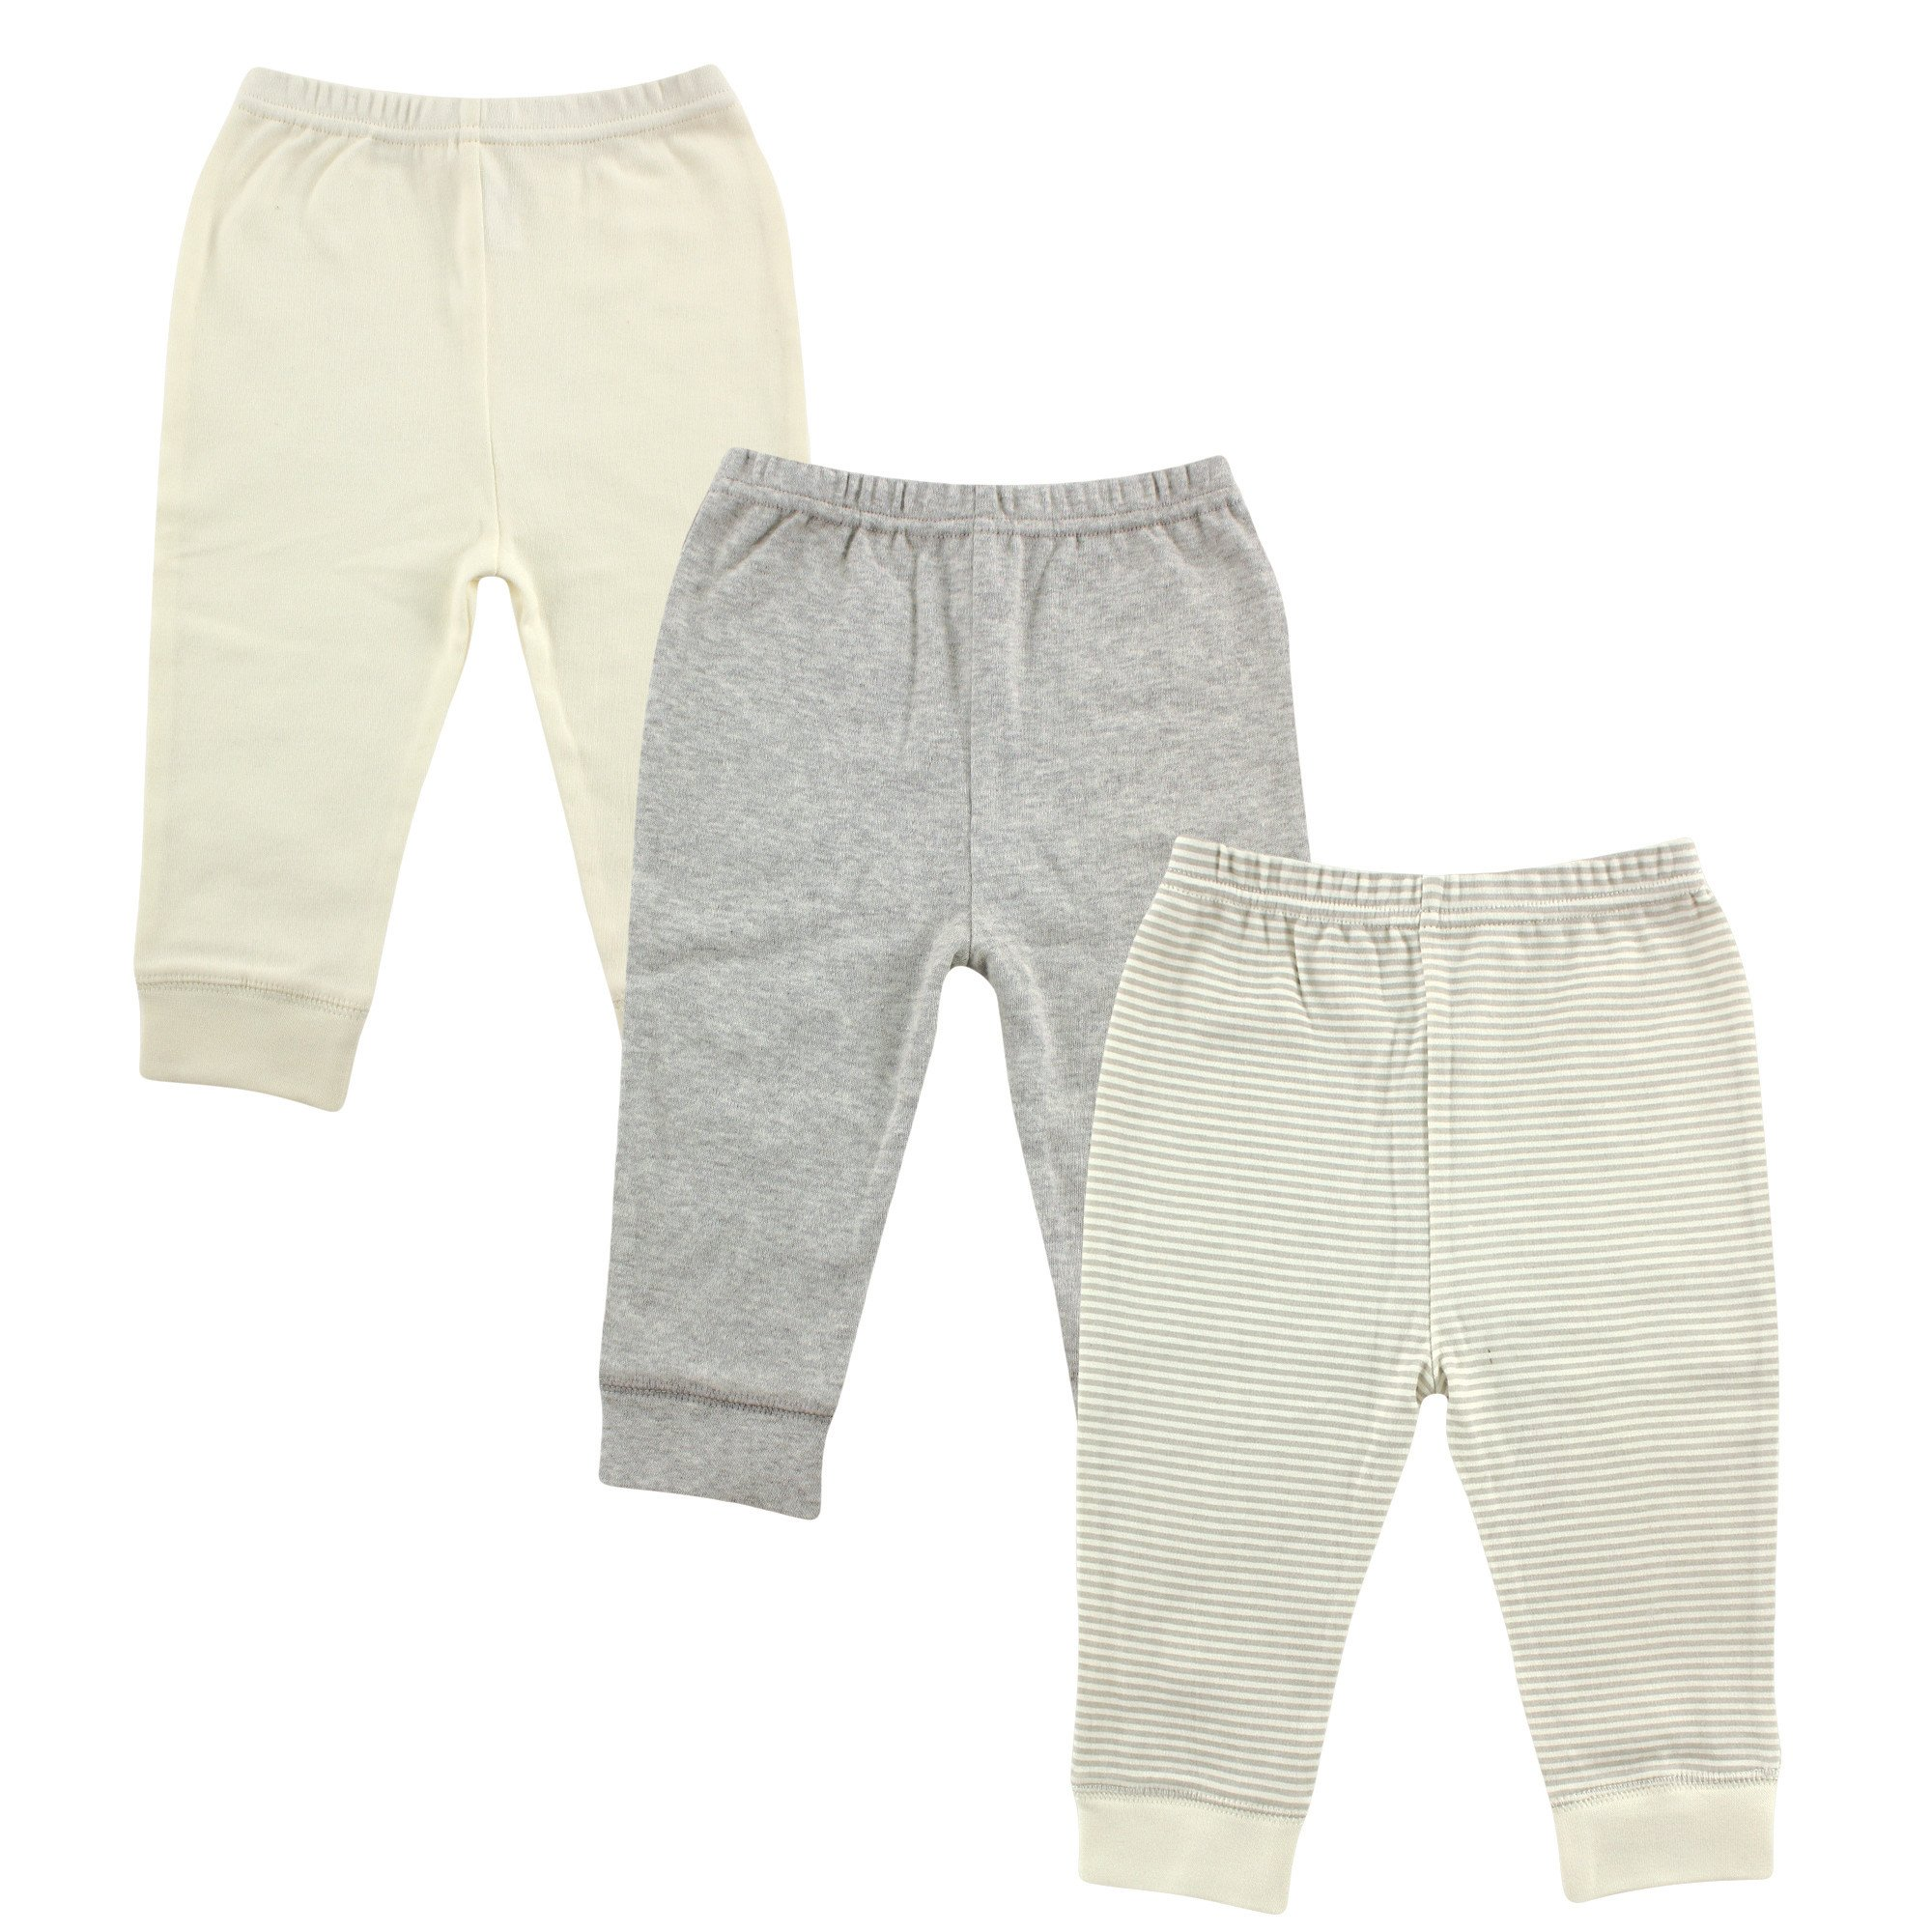 Luvable Friends Unisex 3 Pack Tapered Ankle Pants, Gray Stripe, 9-12 Months